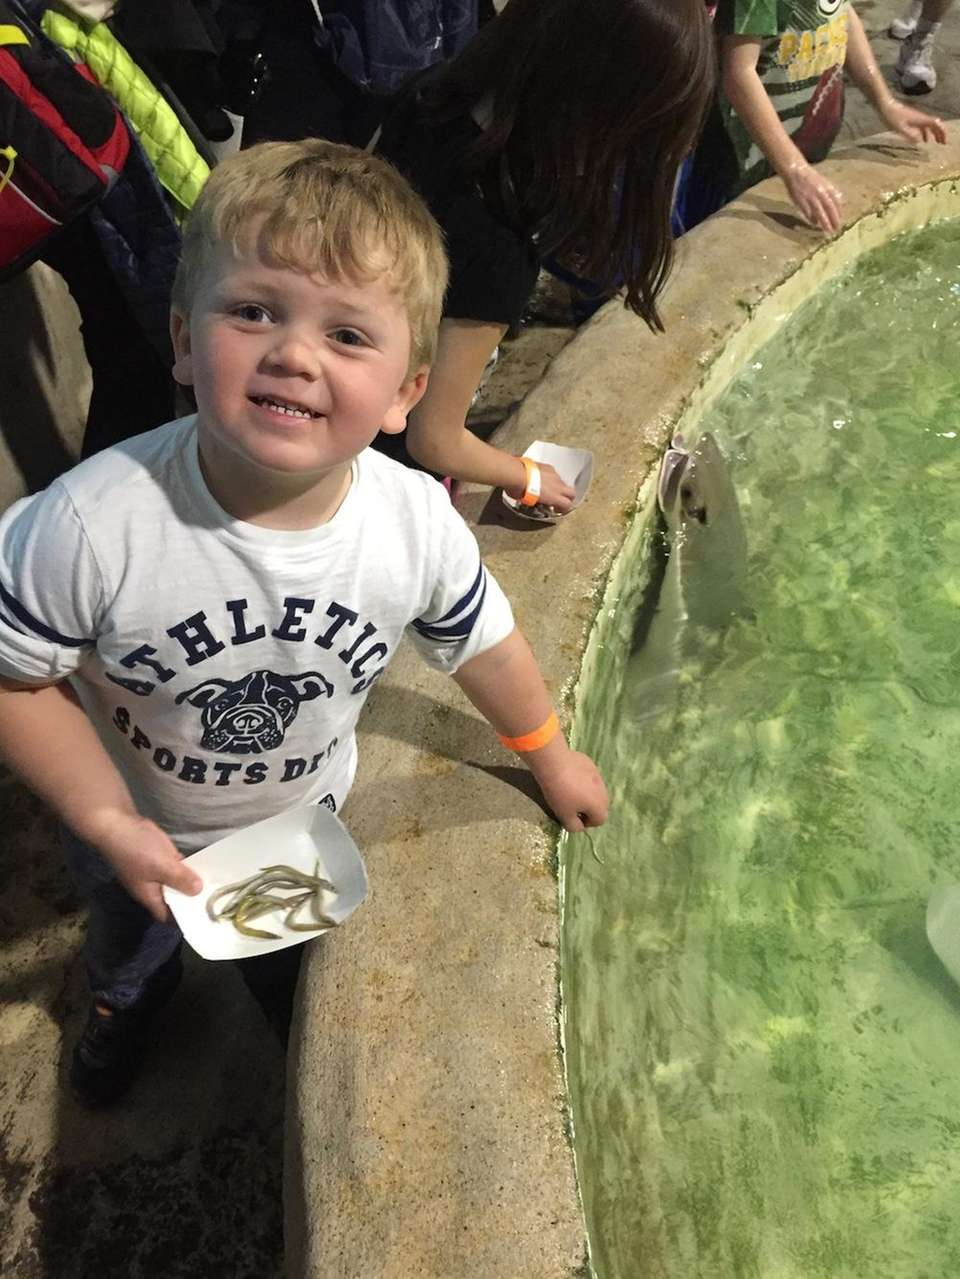 Peter Paul Clark (age 3) of Seaford, NY,